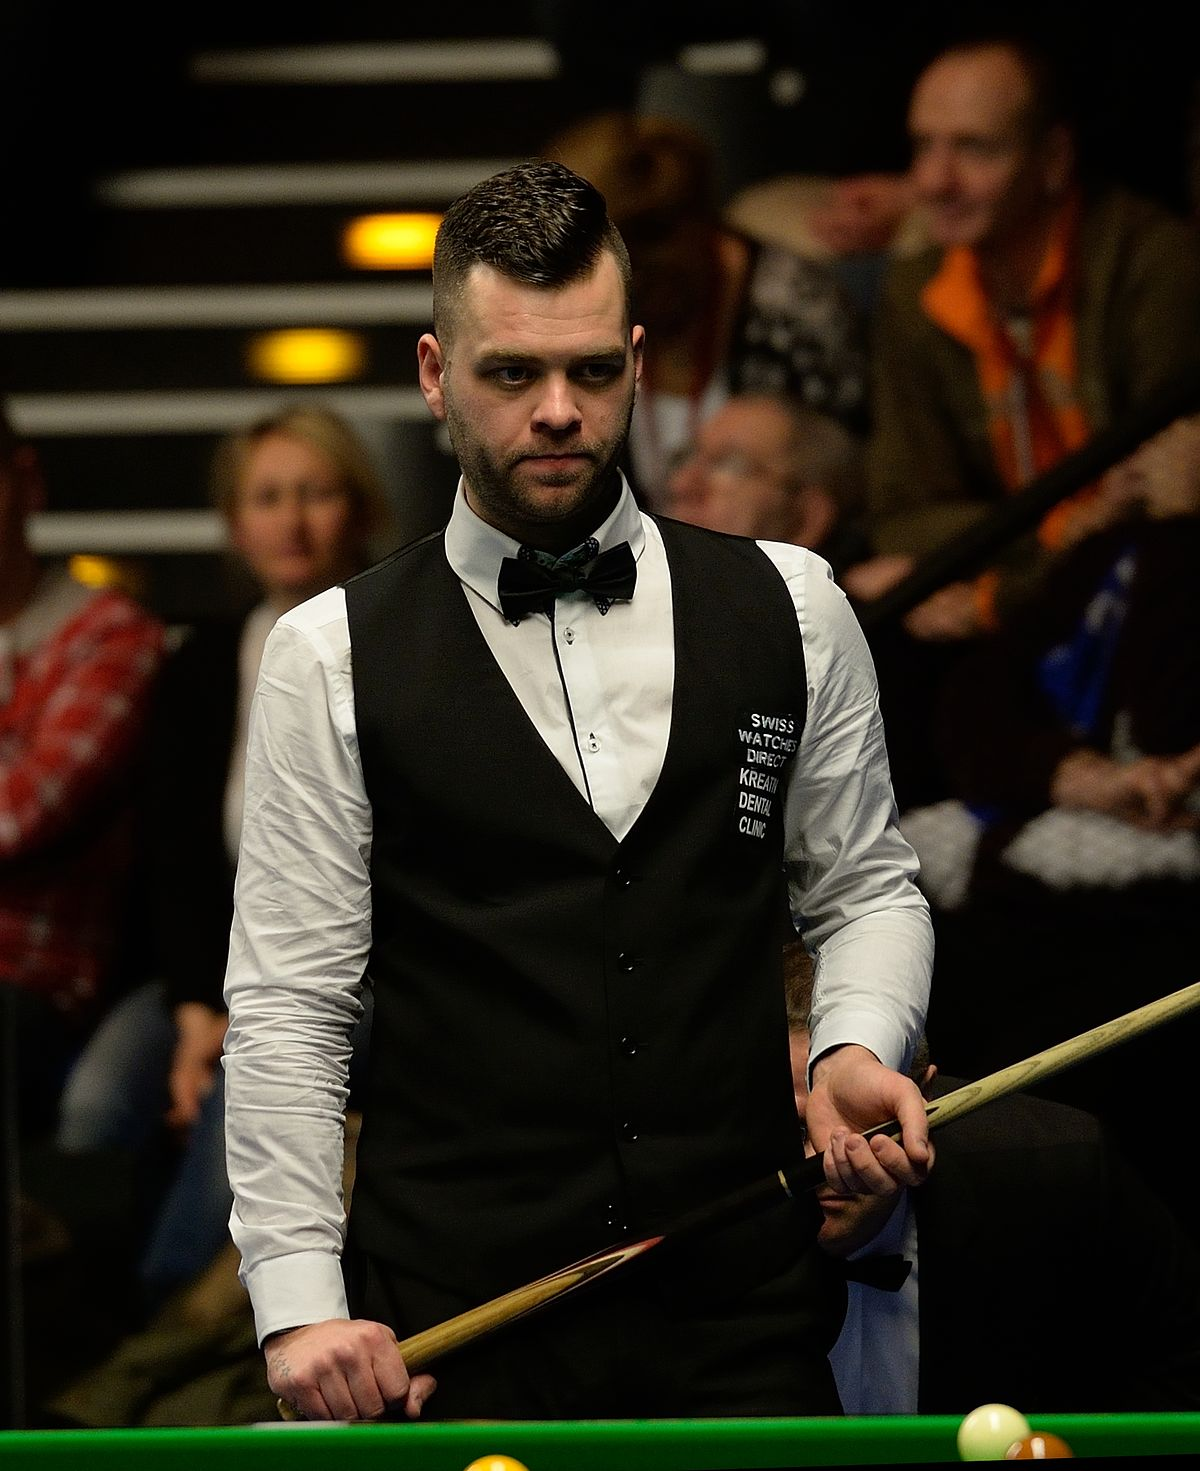 Jimmy Robertson (snooker player) - Wikipedia